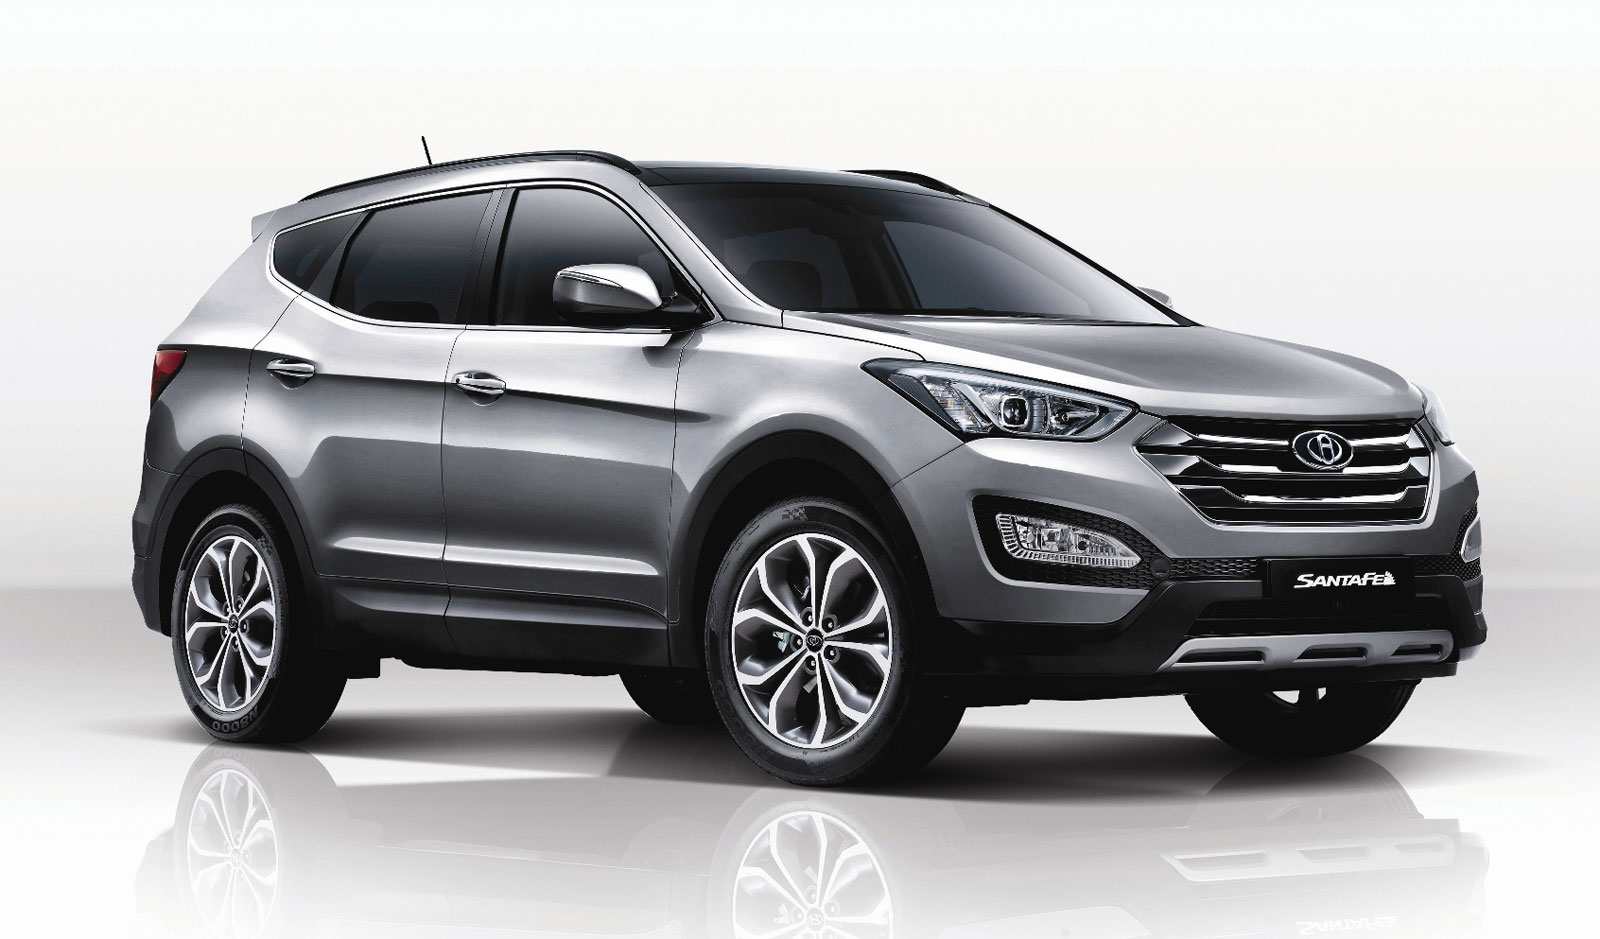 hyundai santa fe now open for booking in malaysia. Black Bedroom Furniture Sets. Home Design Ideas